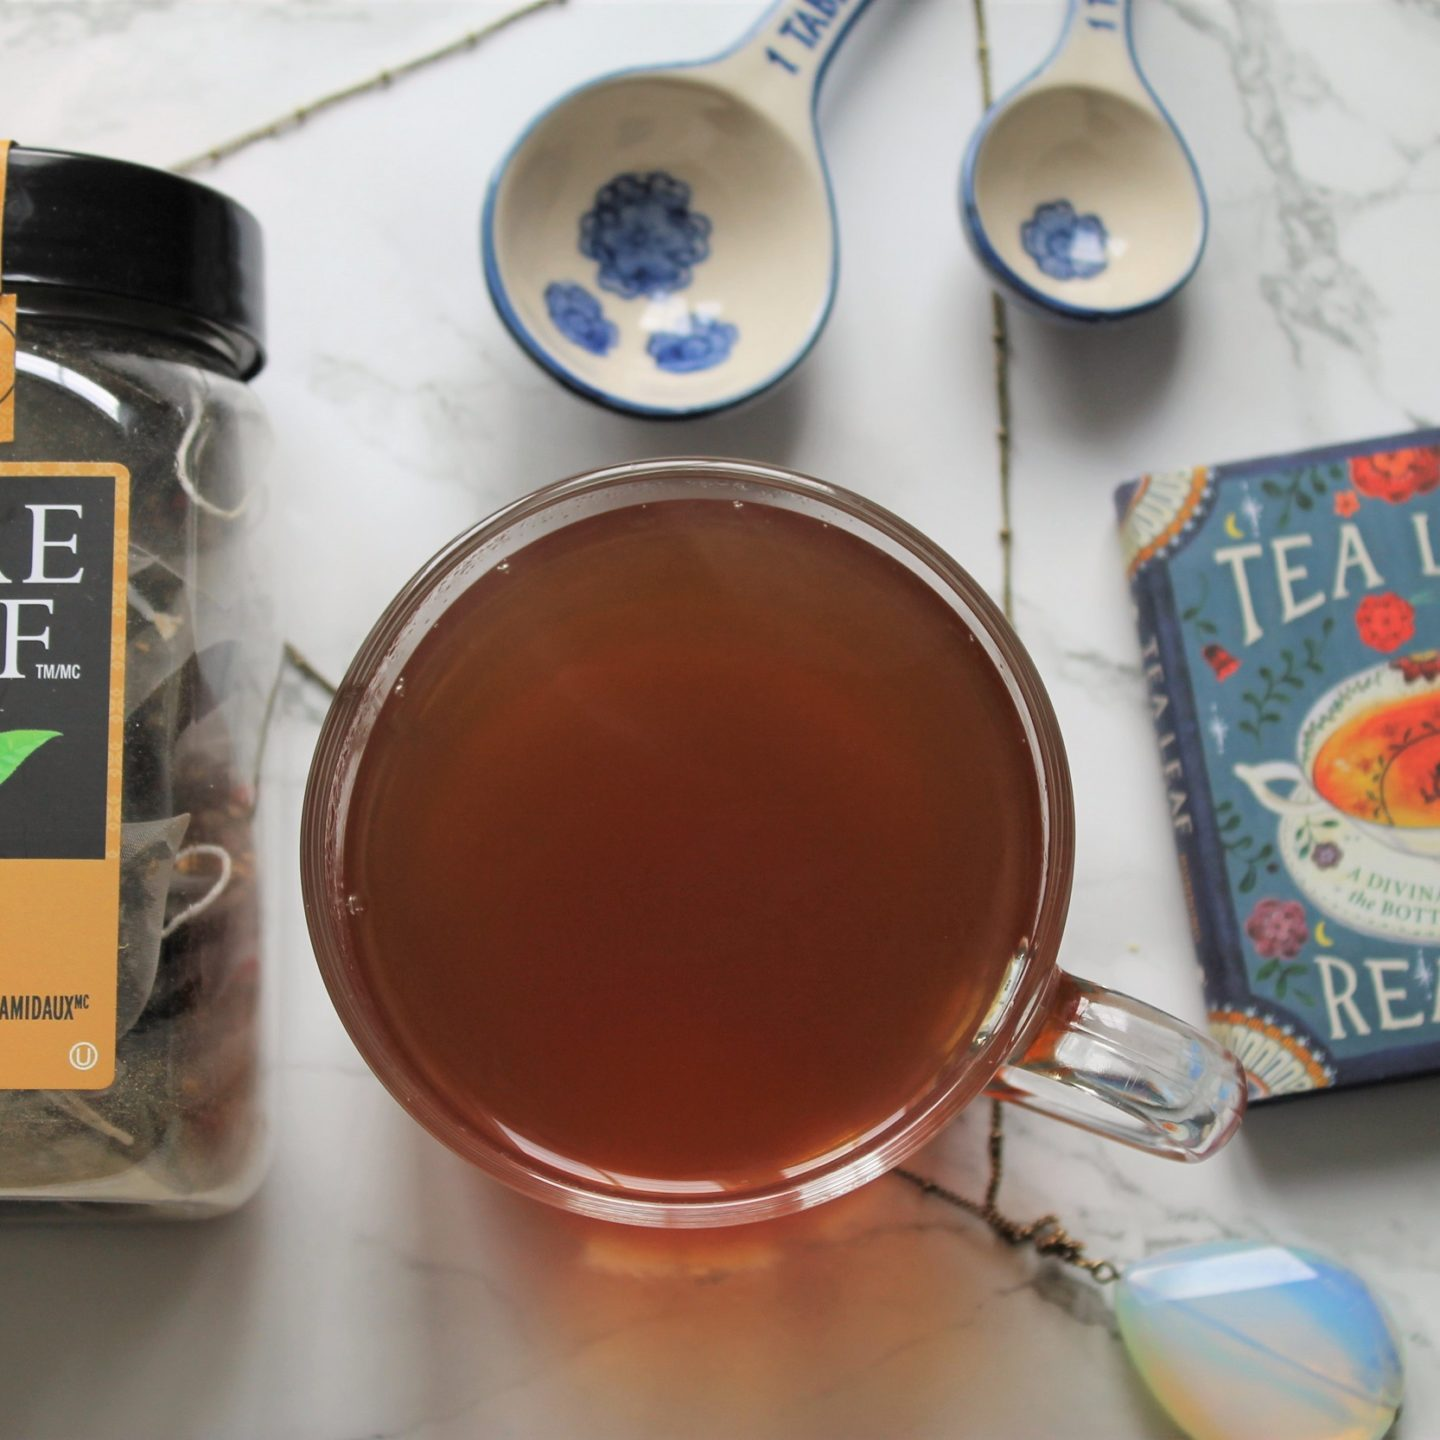 Pure Leaf Chai Tea Review